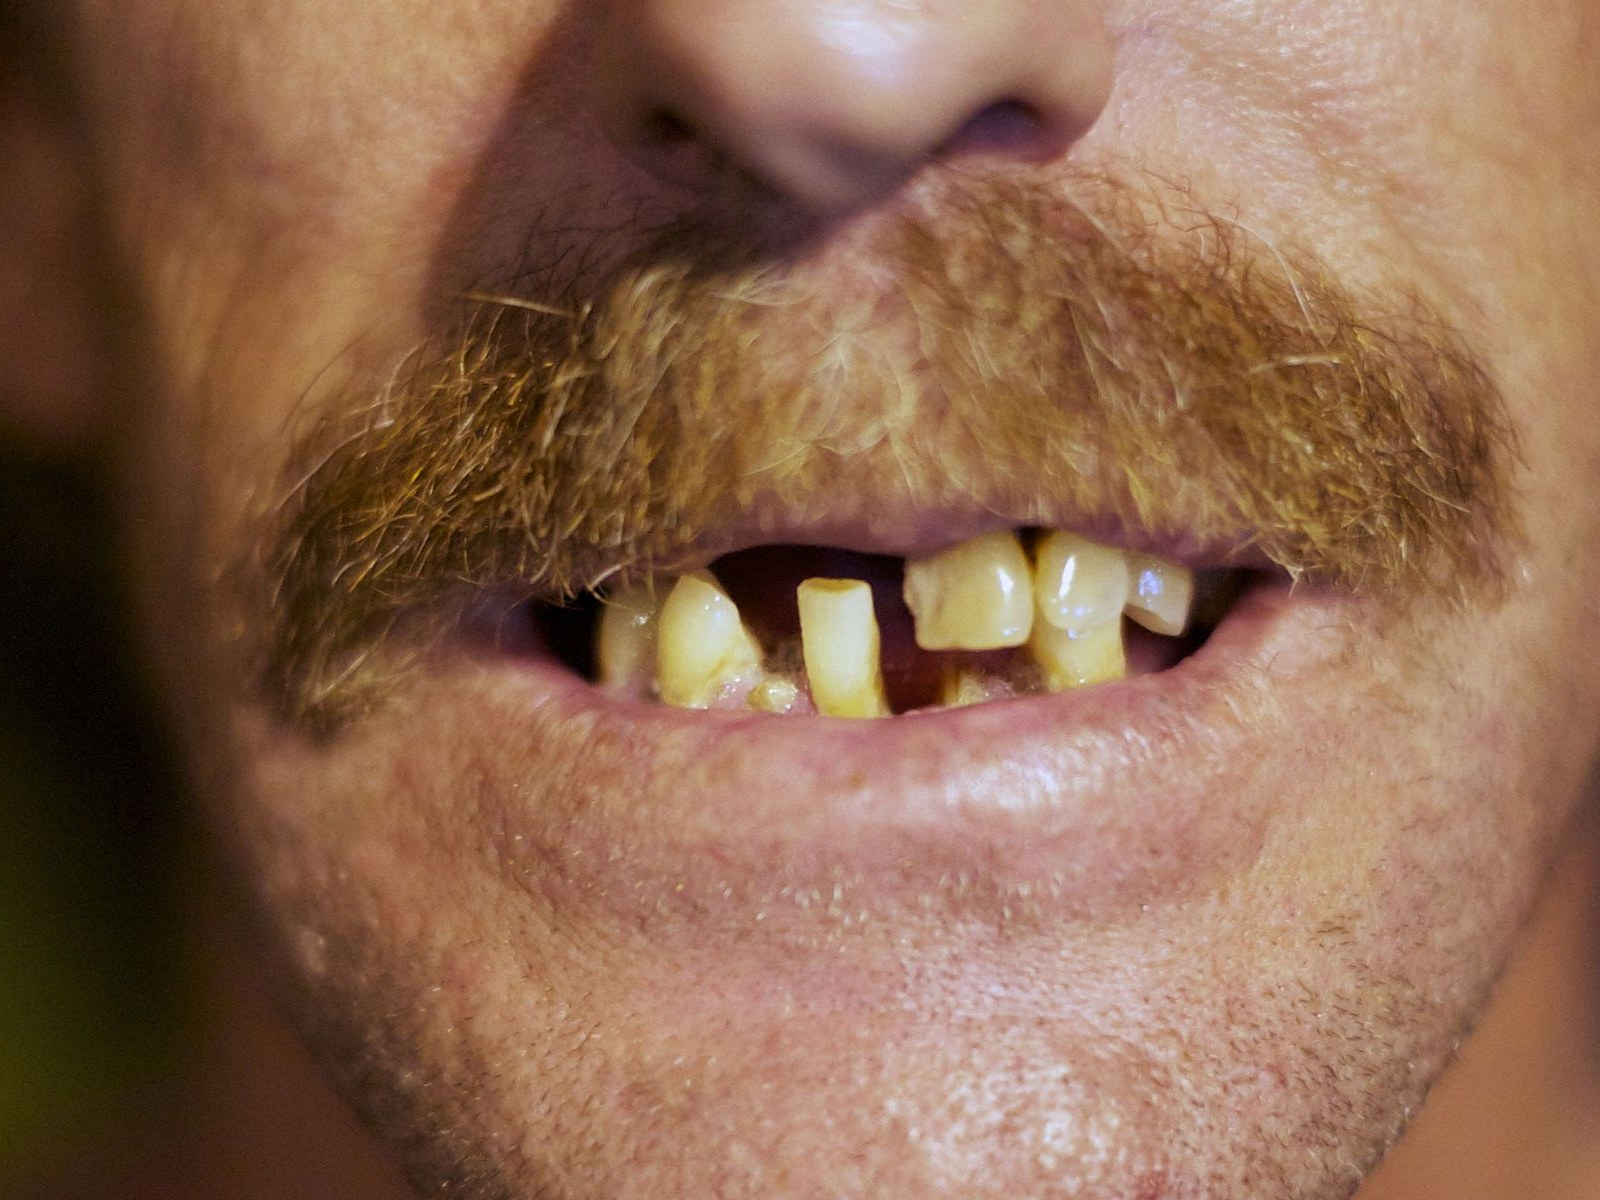 The Difference Between Rich and Poor? Eight Teeth, Says Dental Study